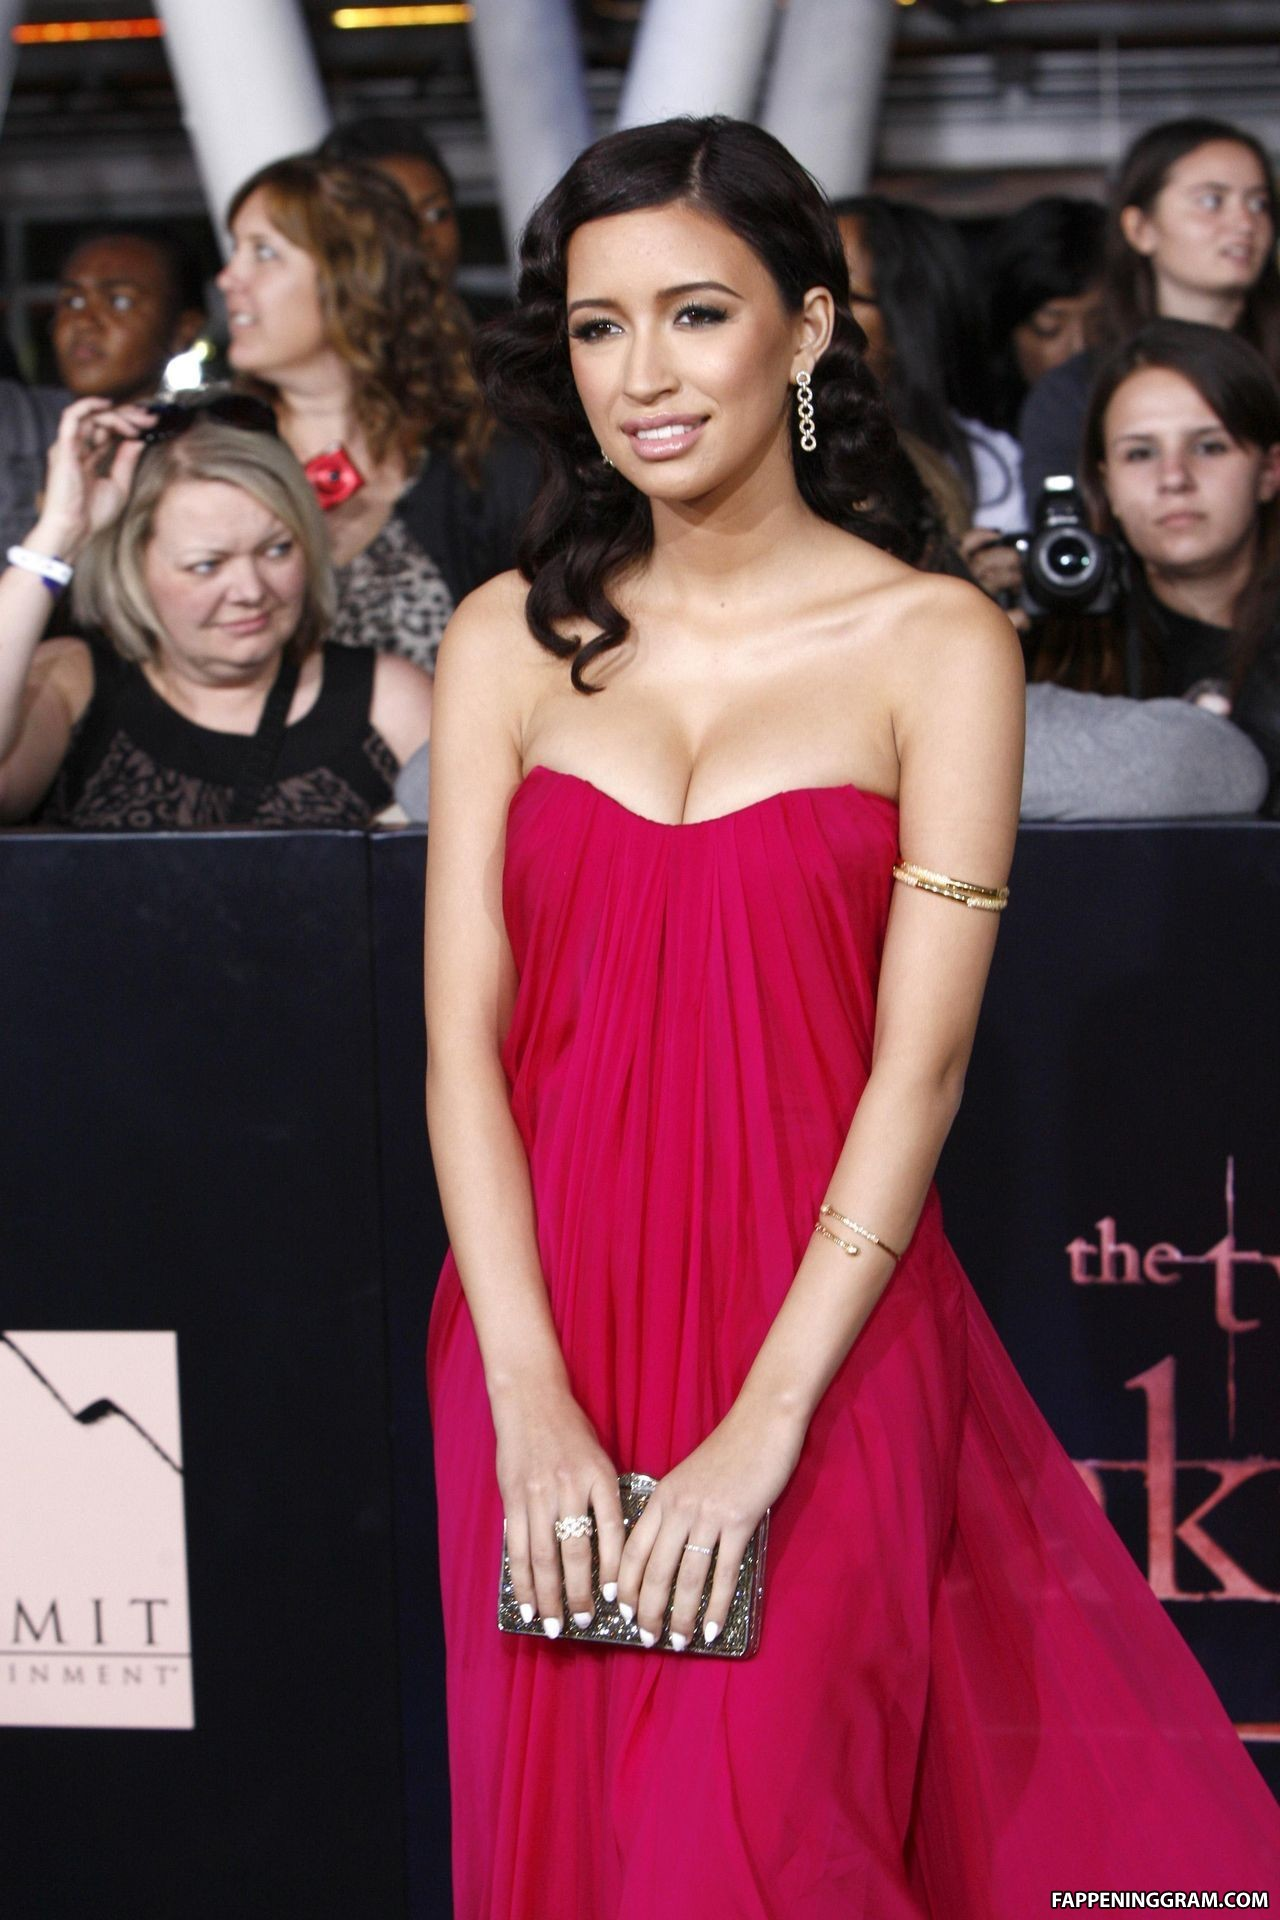 Nude Celebrity Christian Serratos Pictures and Videos